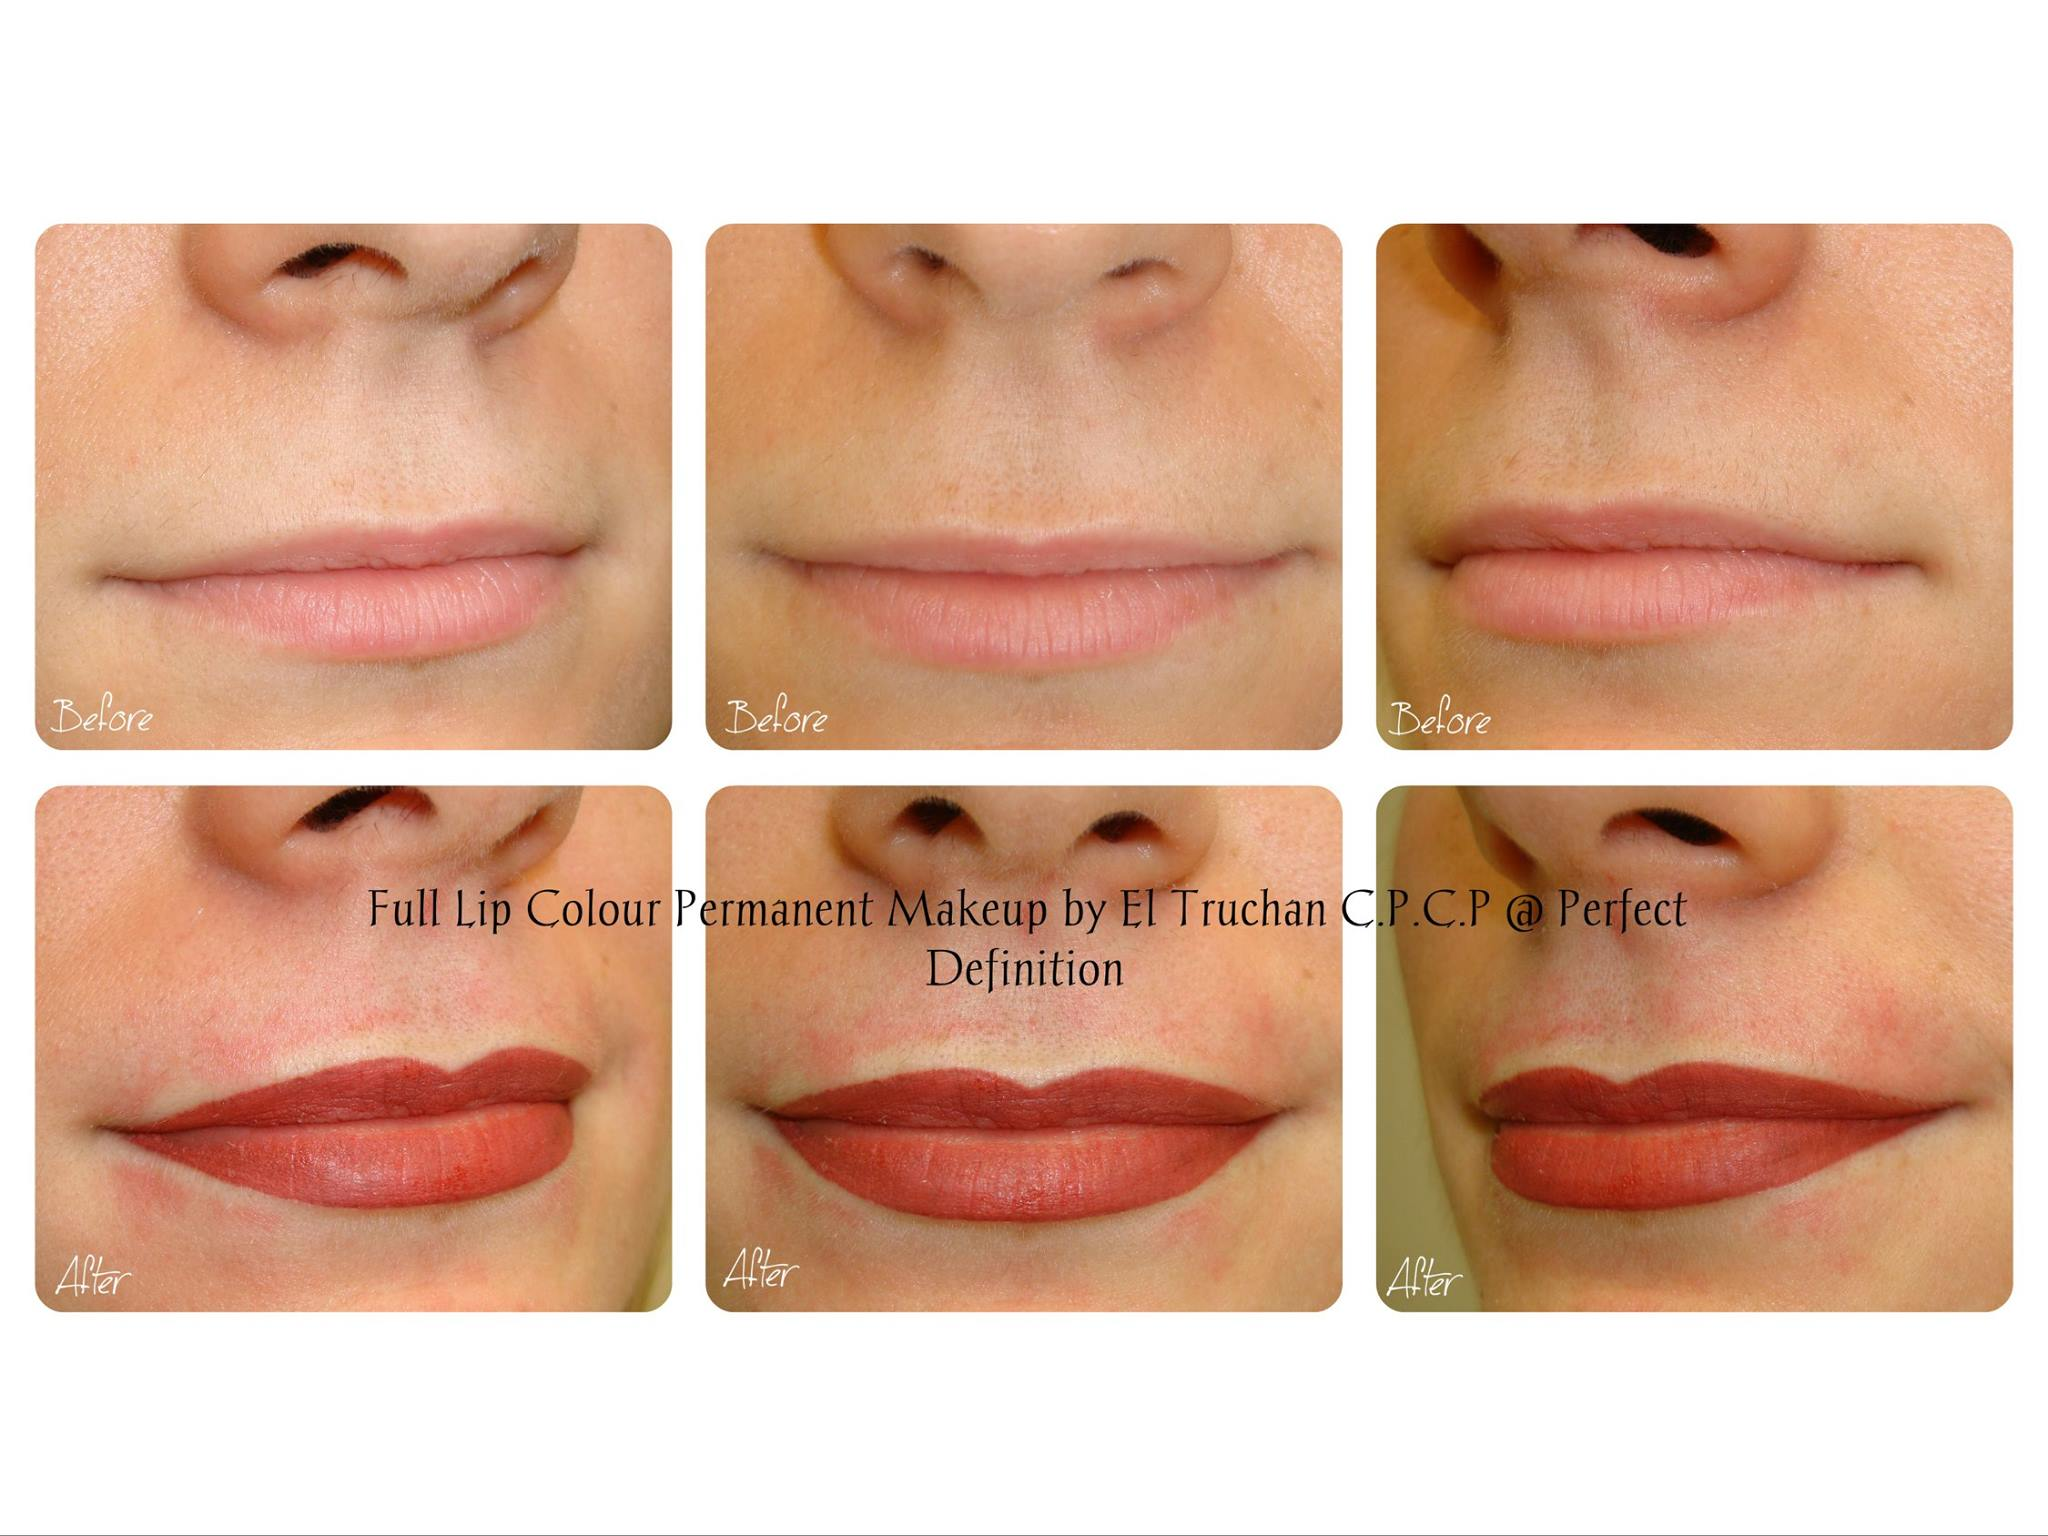 Full lip colour permanent makeup El Truchan